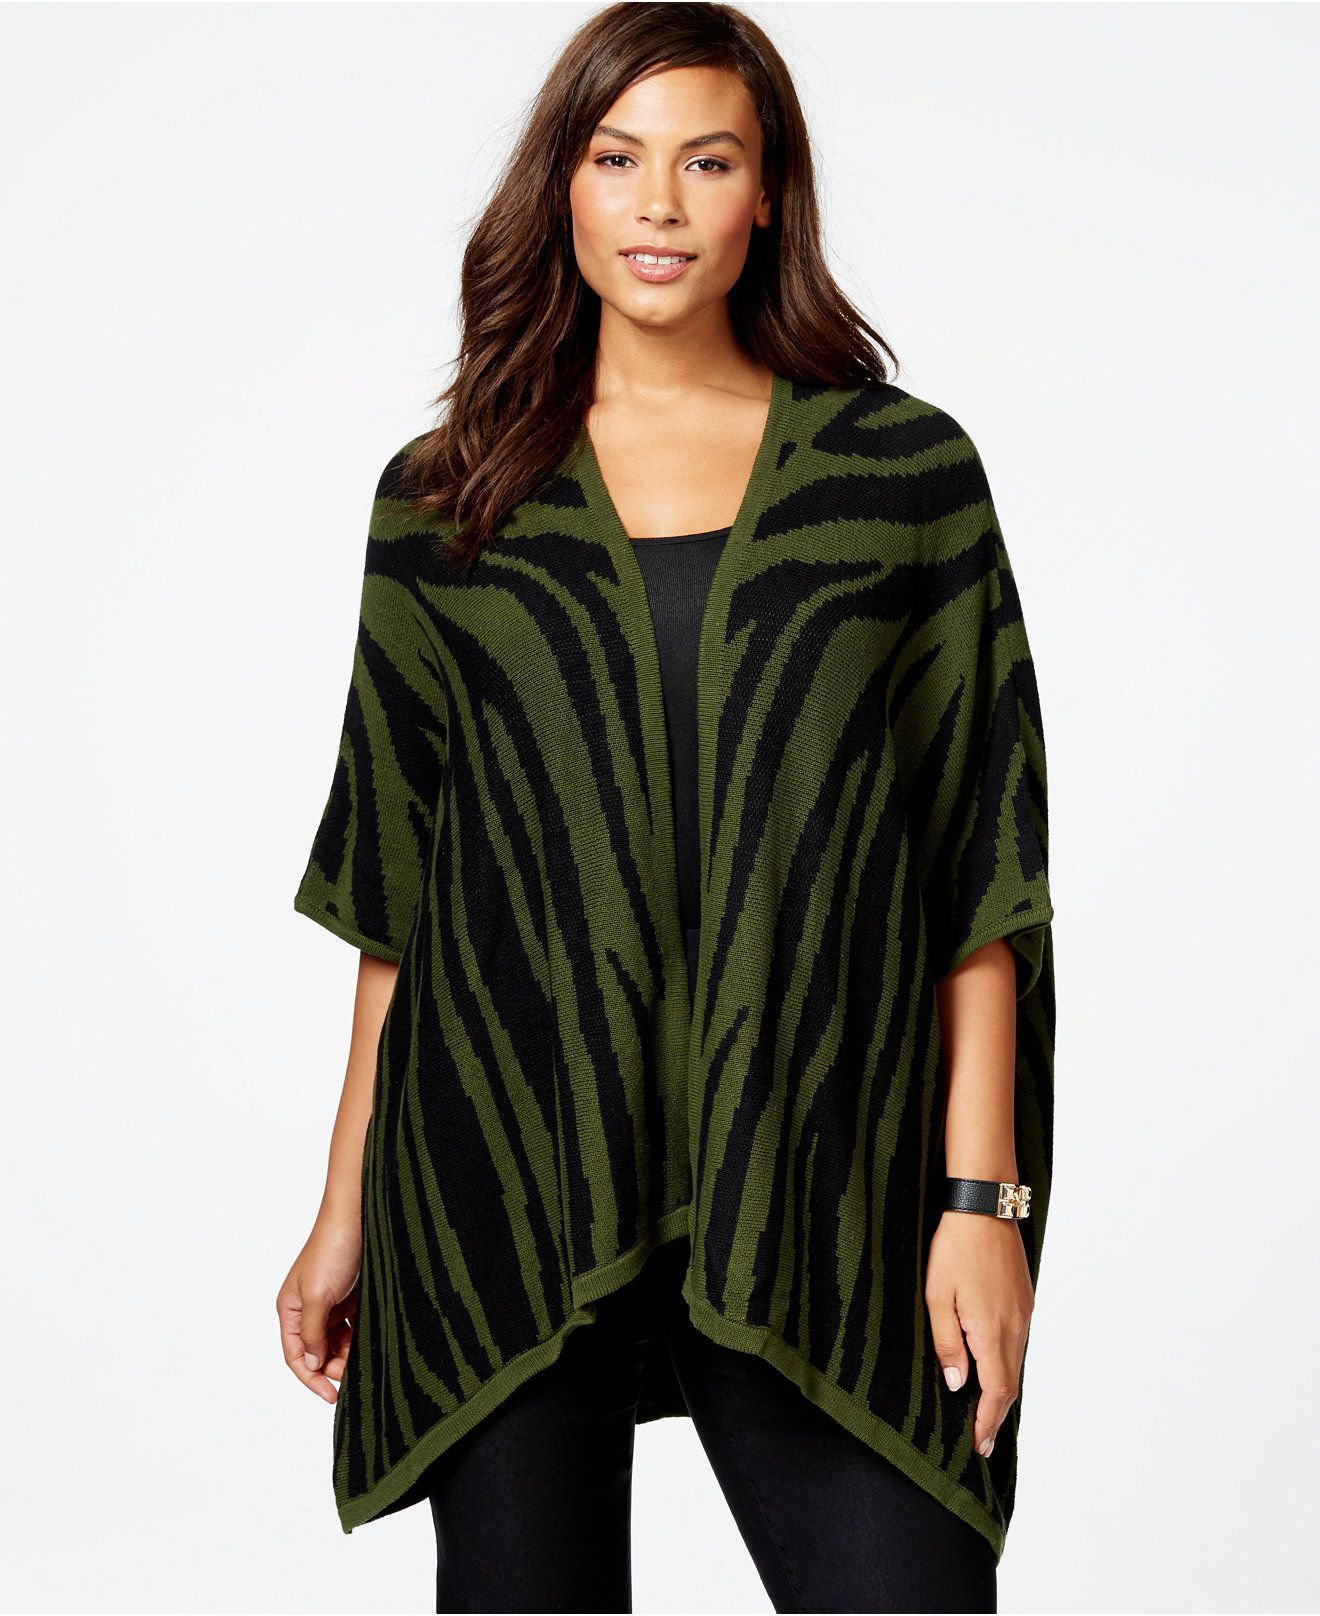 NY Collection Plus Size Zebra-Pattern High-Low Poncho Cardigan - Sweaters - Plus Sizes - Macy's